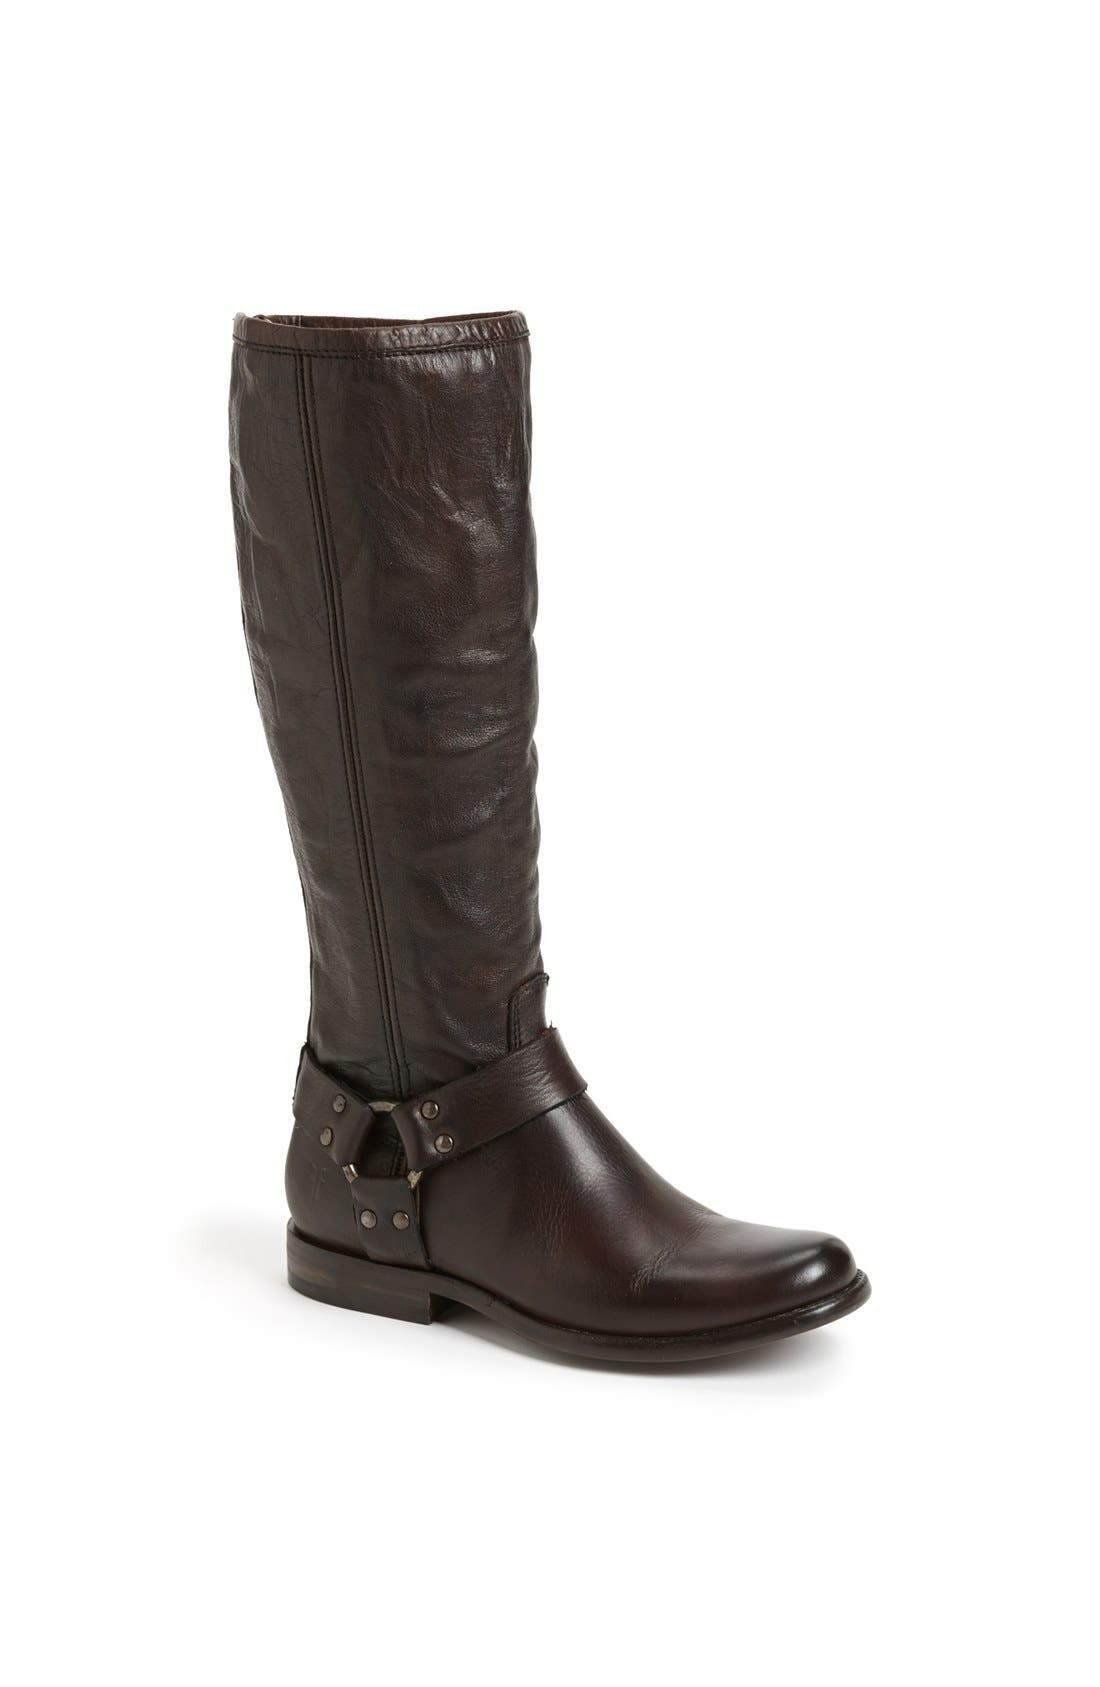 Alternate Image 1 Selected - Frye 'Phillip Harness' Tall Boot